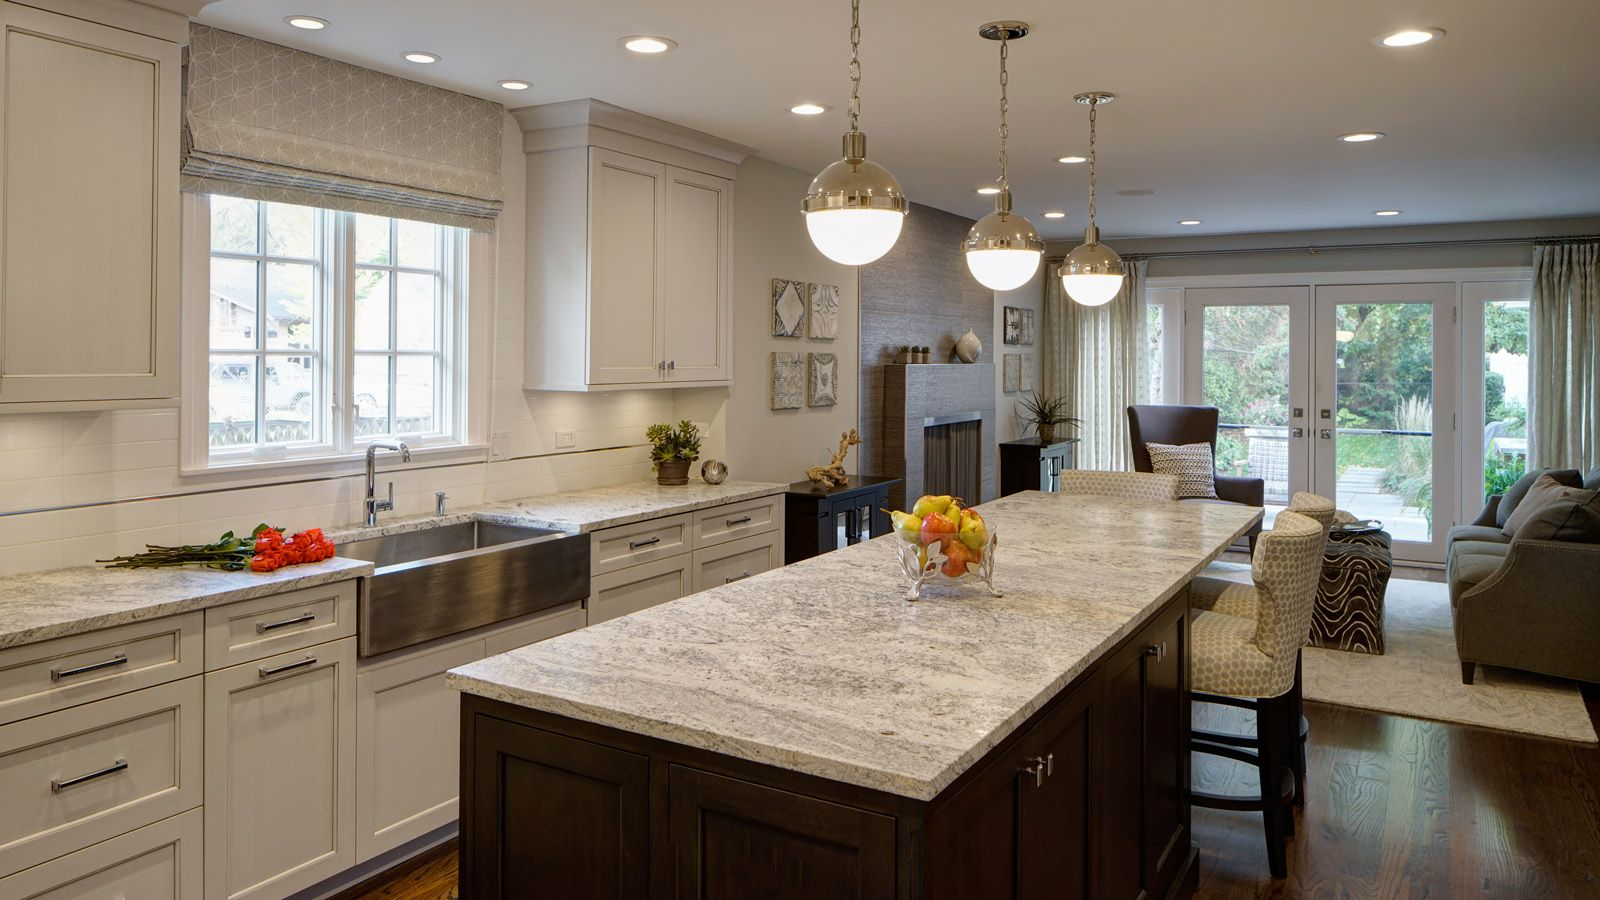 Kitchen Design Layout Ideas L-Shaped L Shaped Kitchen Designs Ideas For Your Beloved Home  Kitchen